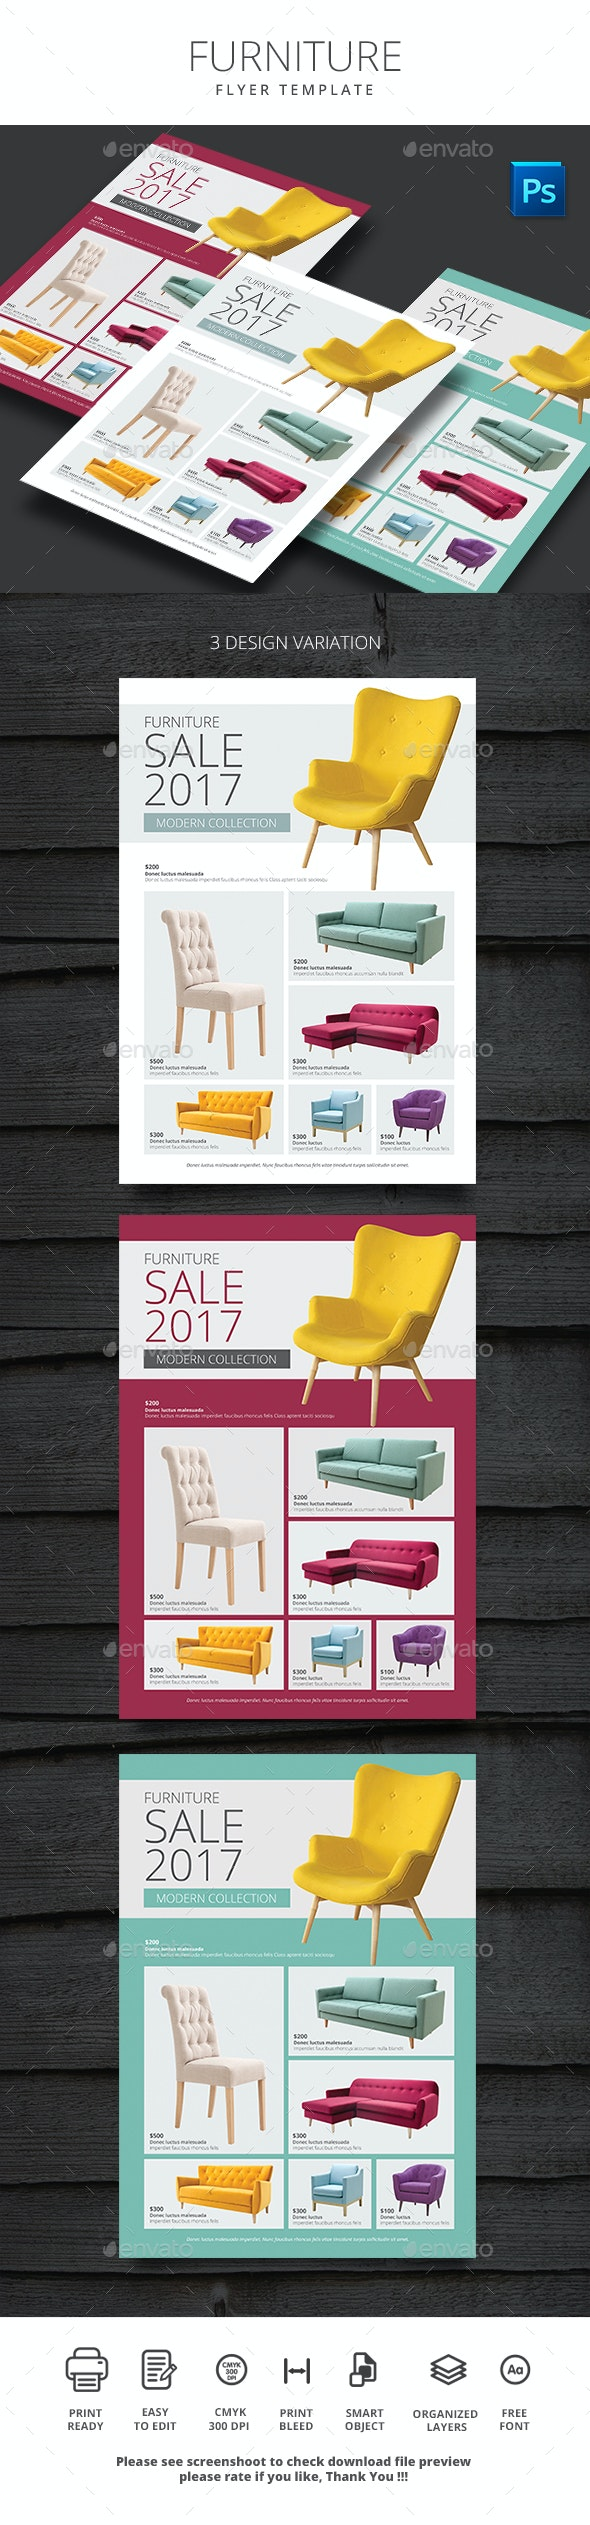 Furniture - Commerce Flyers